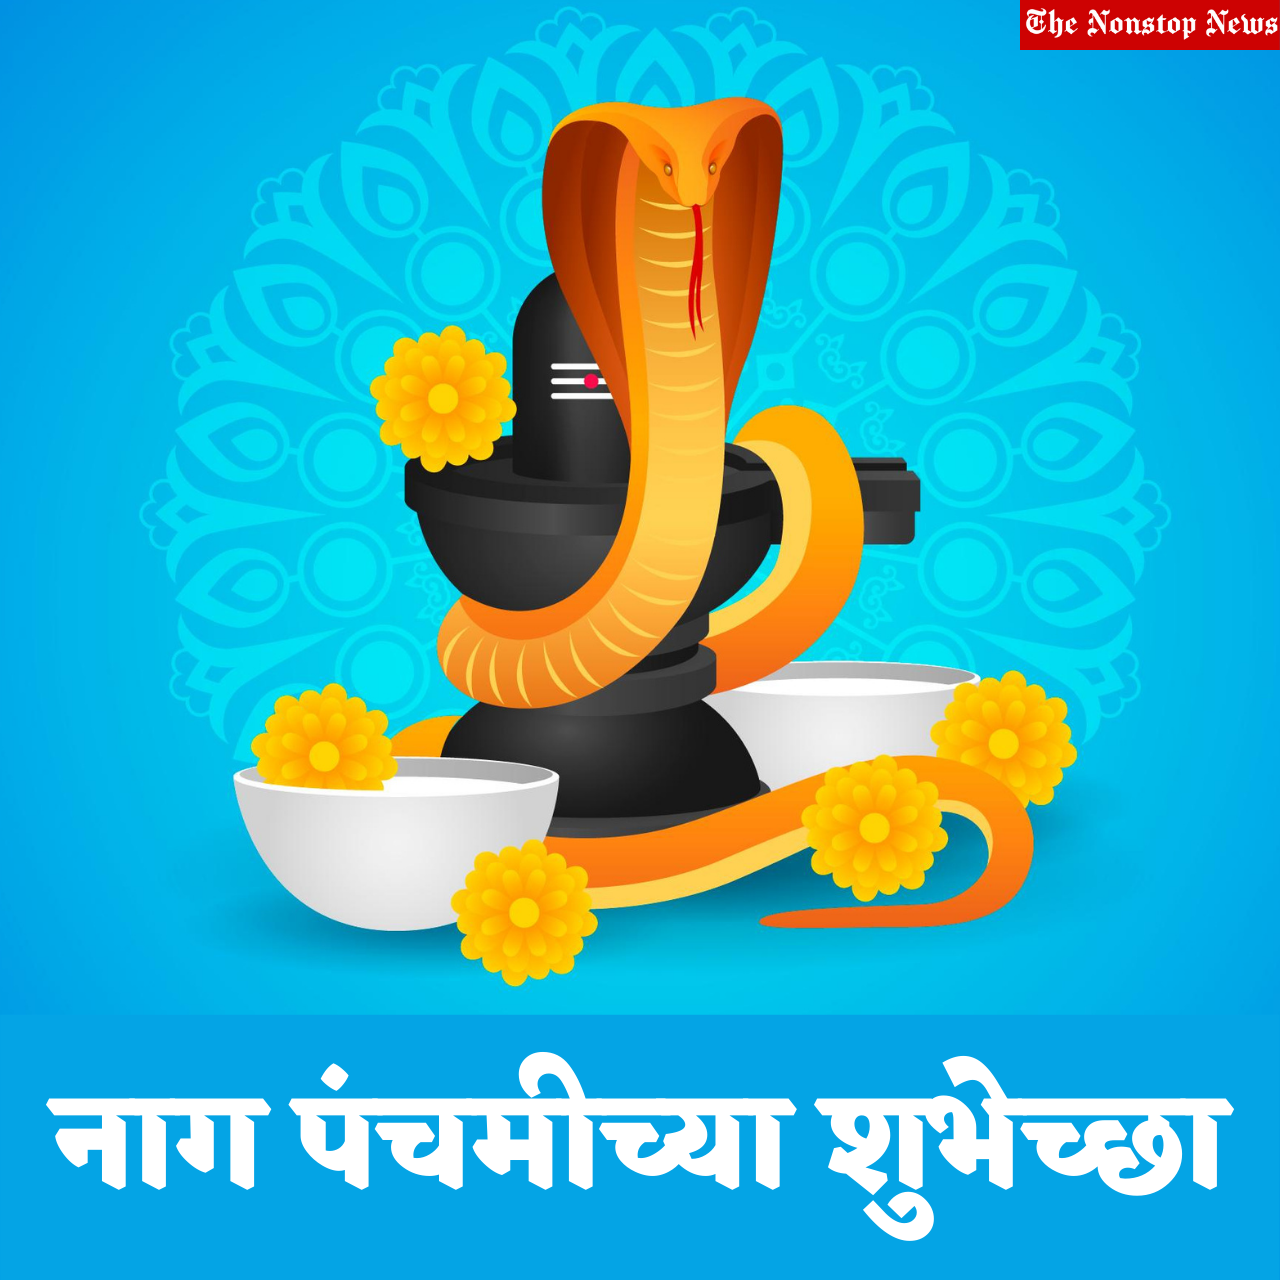 Nag Panchami 2021 Marathi Greetings and Wishes: Quotes, HD Images, Poster, Stickers, Status, Wallpaper, and Messages